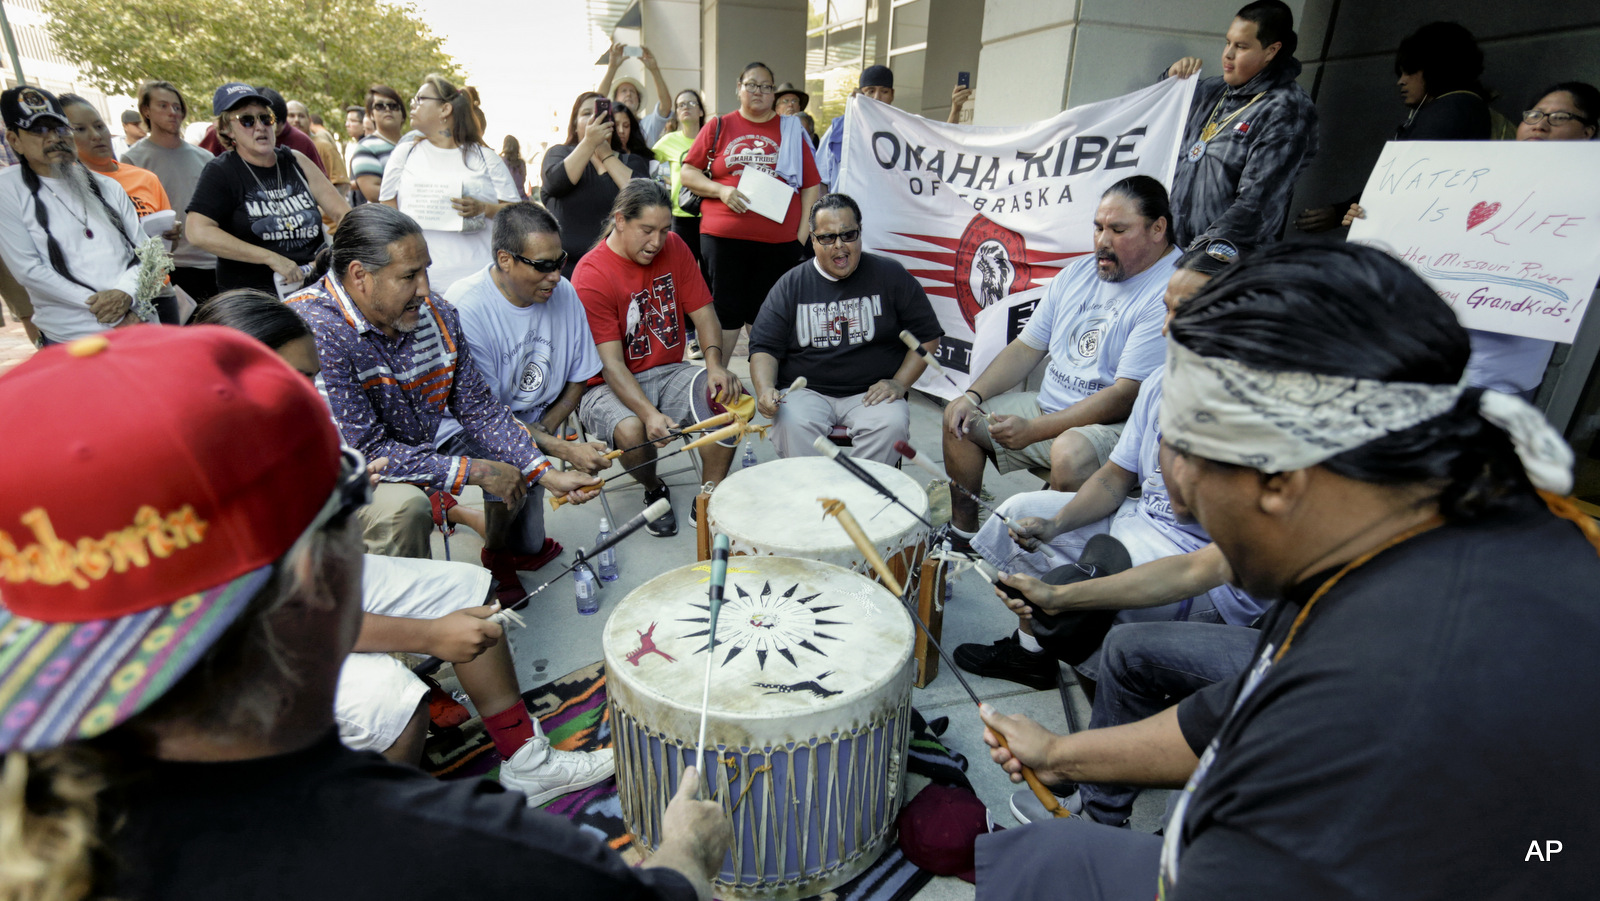 Members of the Ponca, Santee, Winnebago and Omaha Tribes in Nebraska and Iowa along with others participate gather during a rally on Thursday, Sept. 8, 2016, in front of the Army Corps of Engineers offices in Omaha, Neb., to protest against the Dakota Access Pipeline in the Dakotas and Iowa.